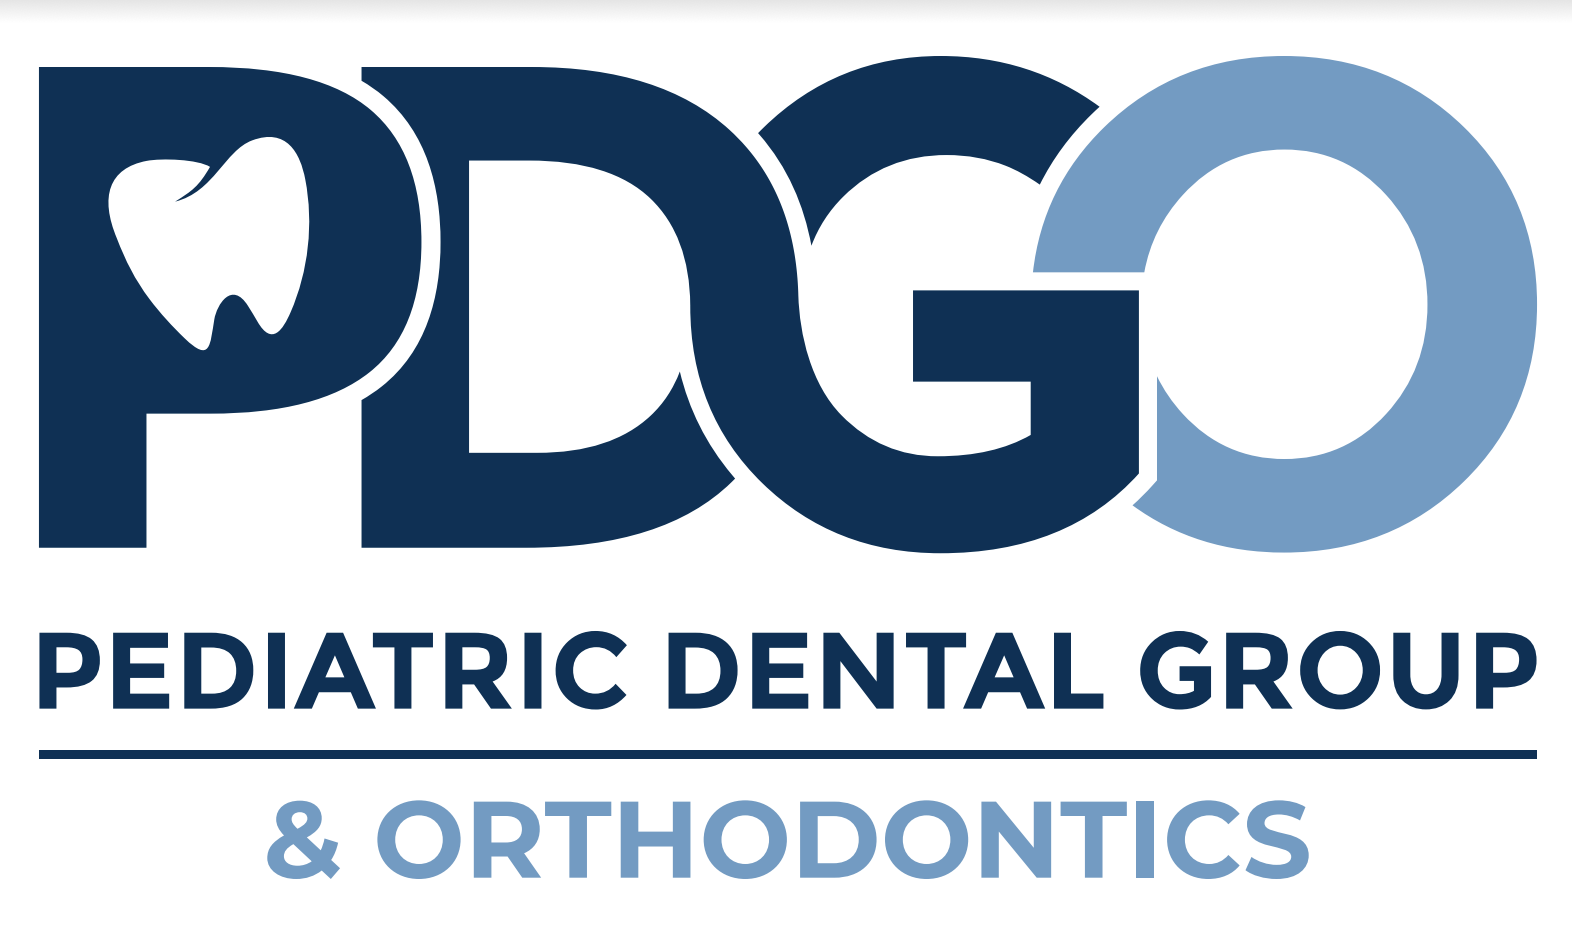 Pediatric Dental Group